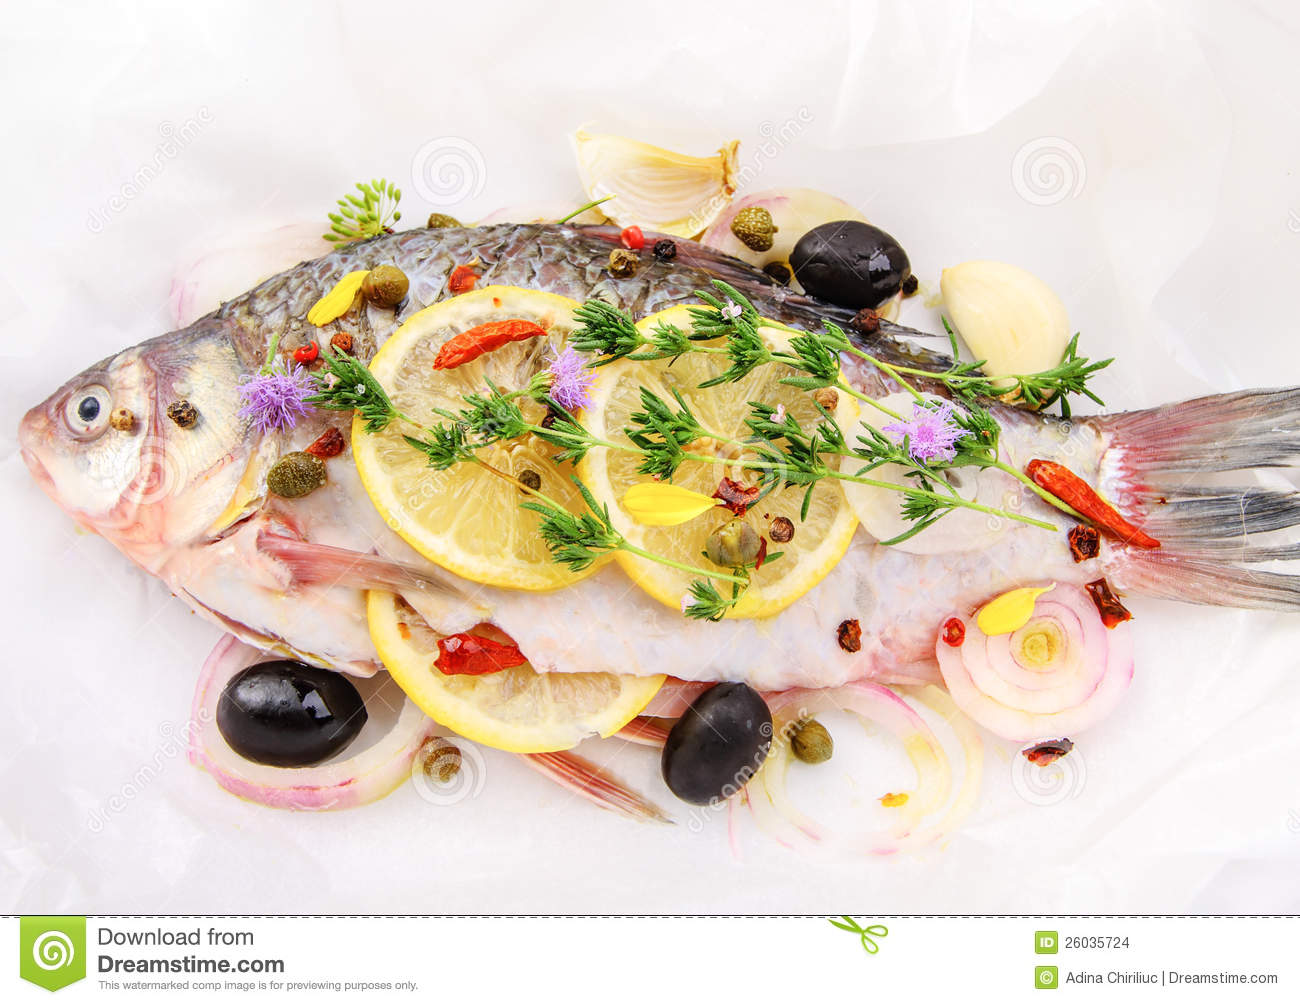 how to cook raw fish